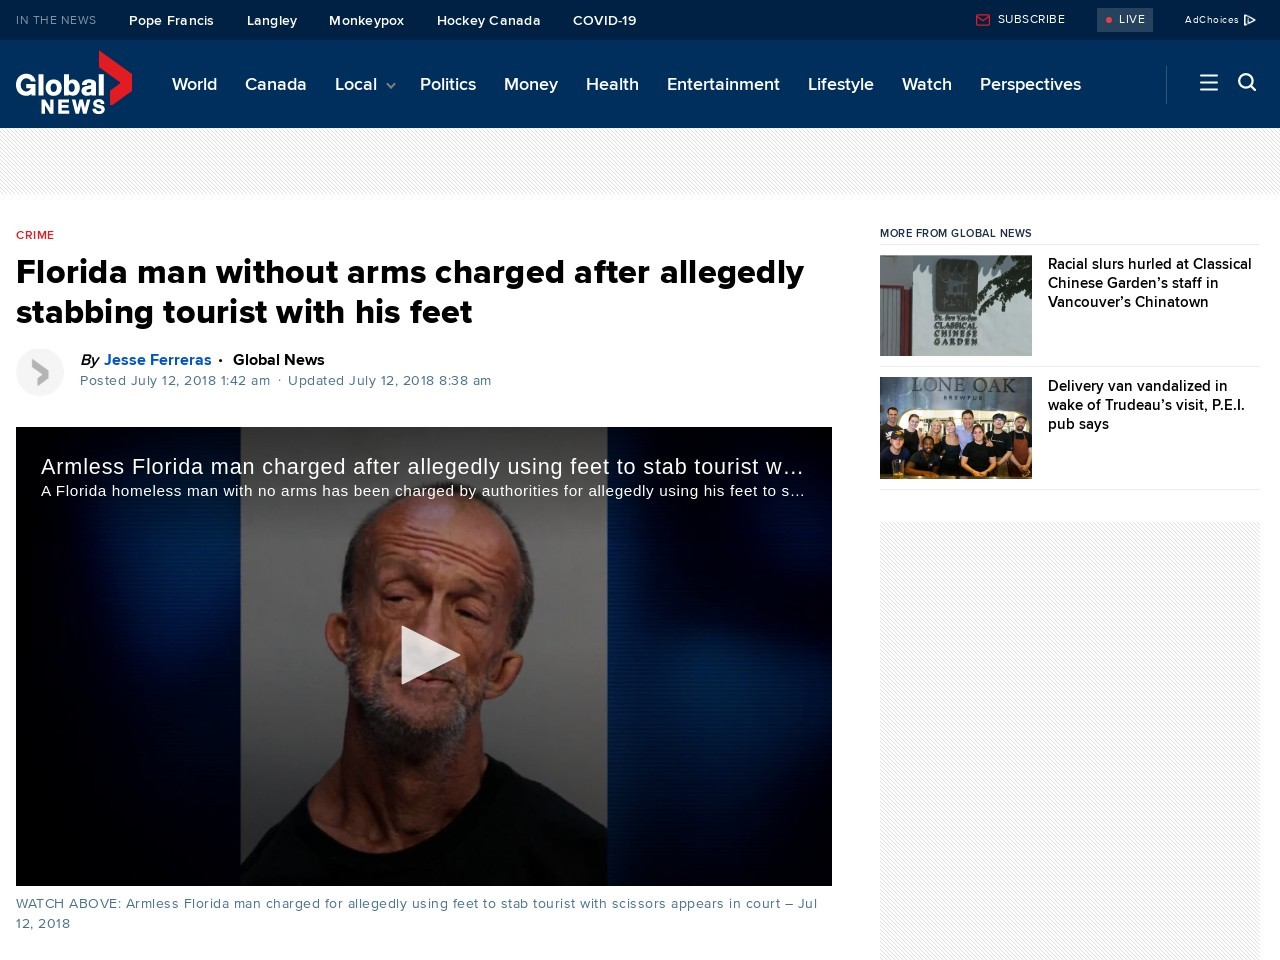 Florida man without arms charged after allegedly stabbing tourist with his feet